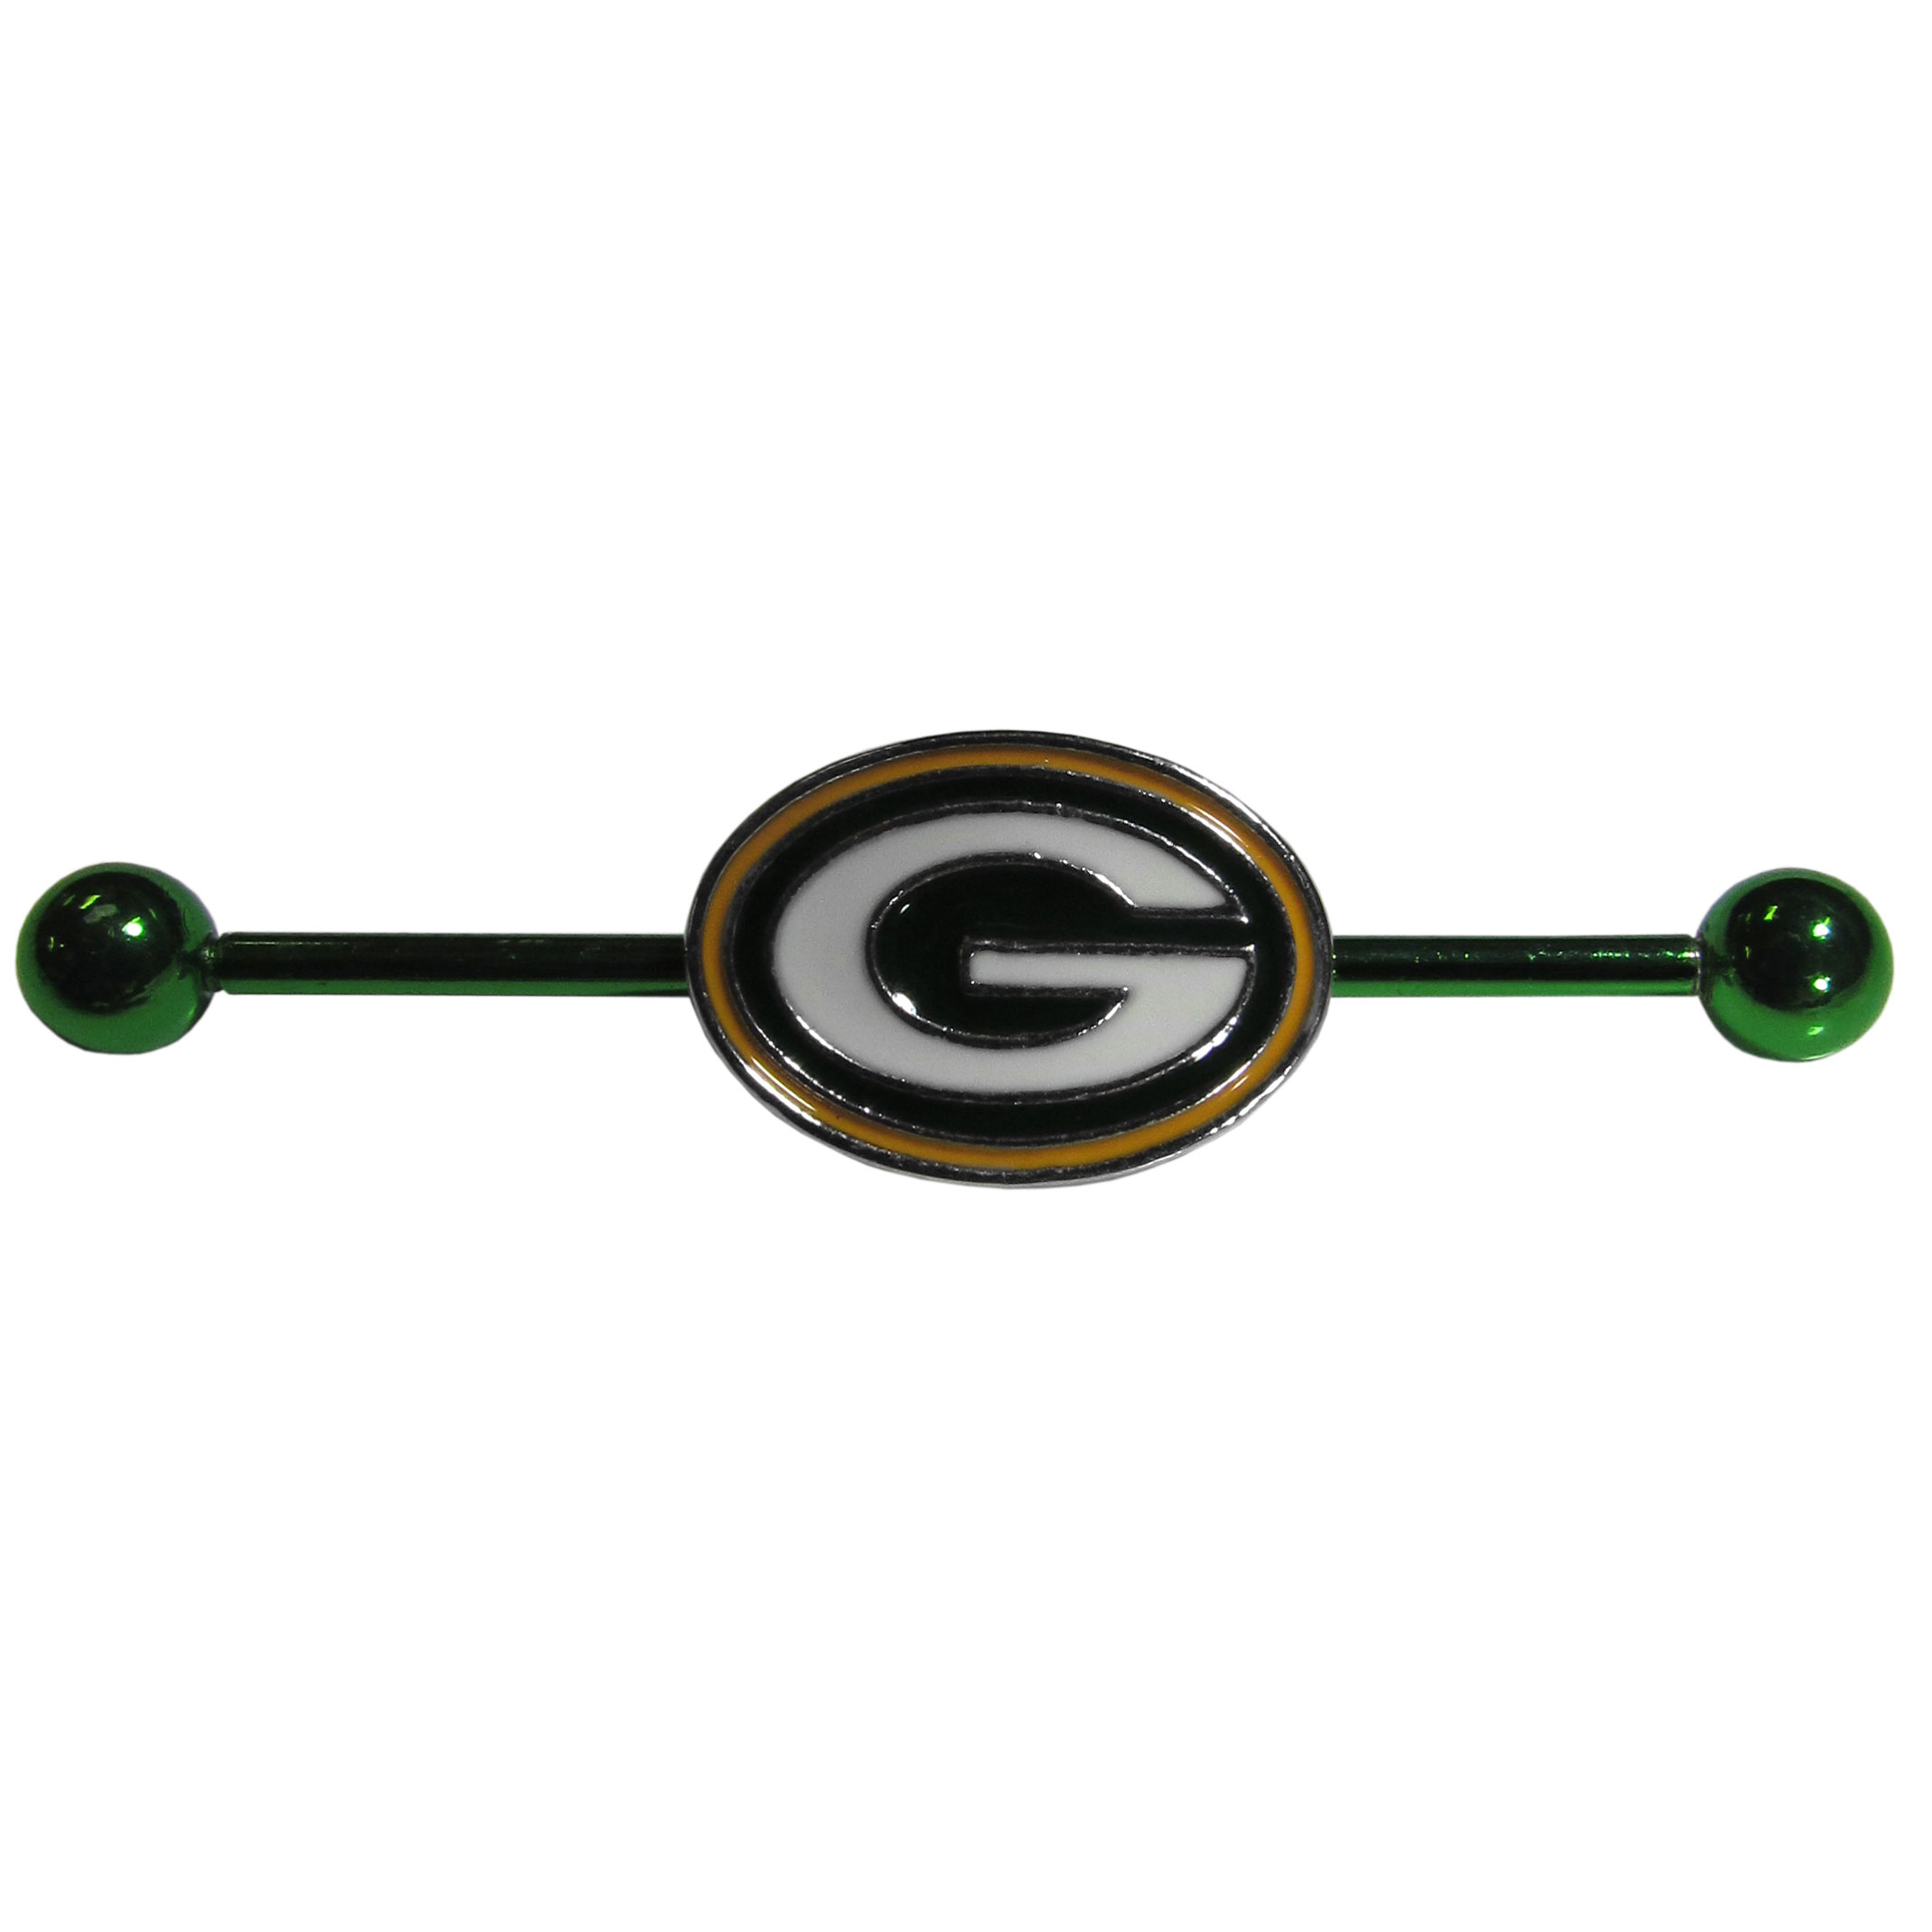 Green Bay Packers Industrial Slider Barbell - Show off your love of the game with this officially licensed.Green Bay Packers industrial slider barbell. The 40mm barbell features an expertly designed team slider charm